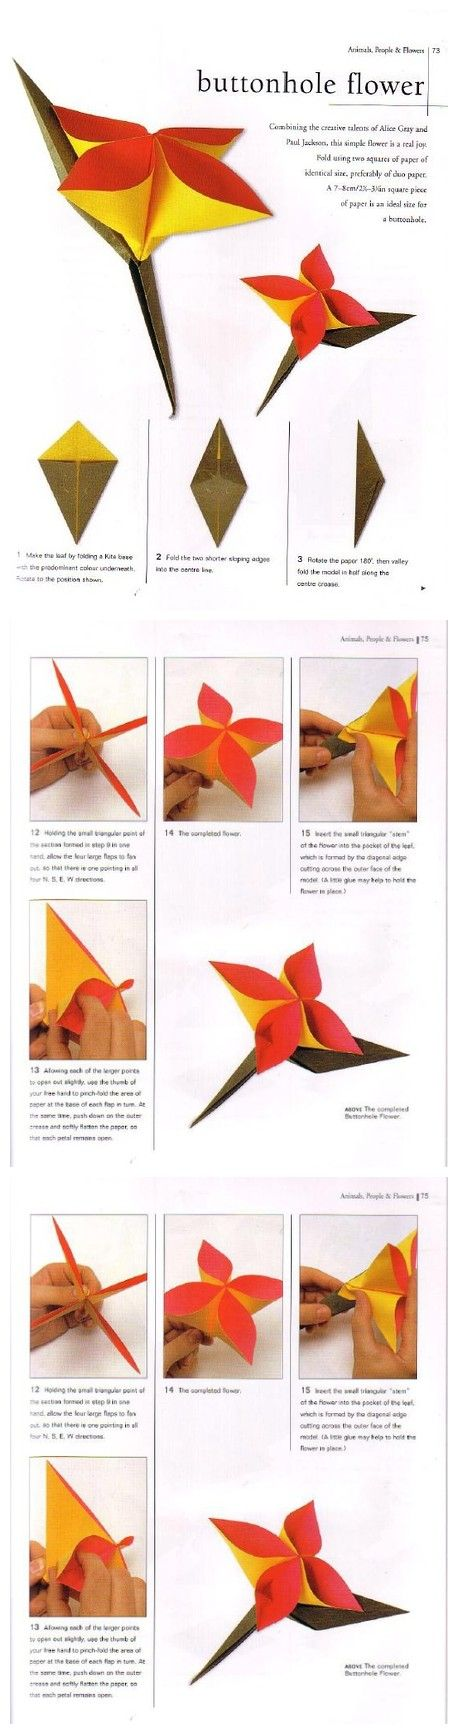 The 76 Best Images About Origami On Pinterest Christmas Star Tavin39s My Kids And Love Enjoy Arti Must Show Them This